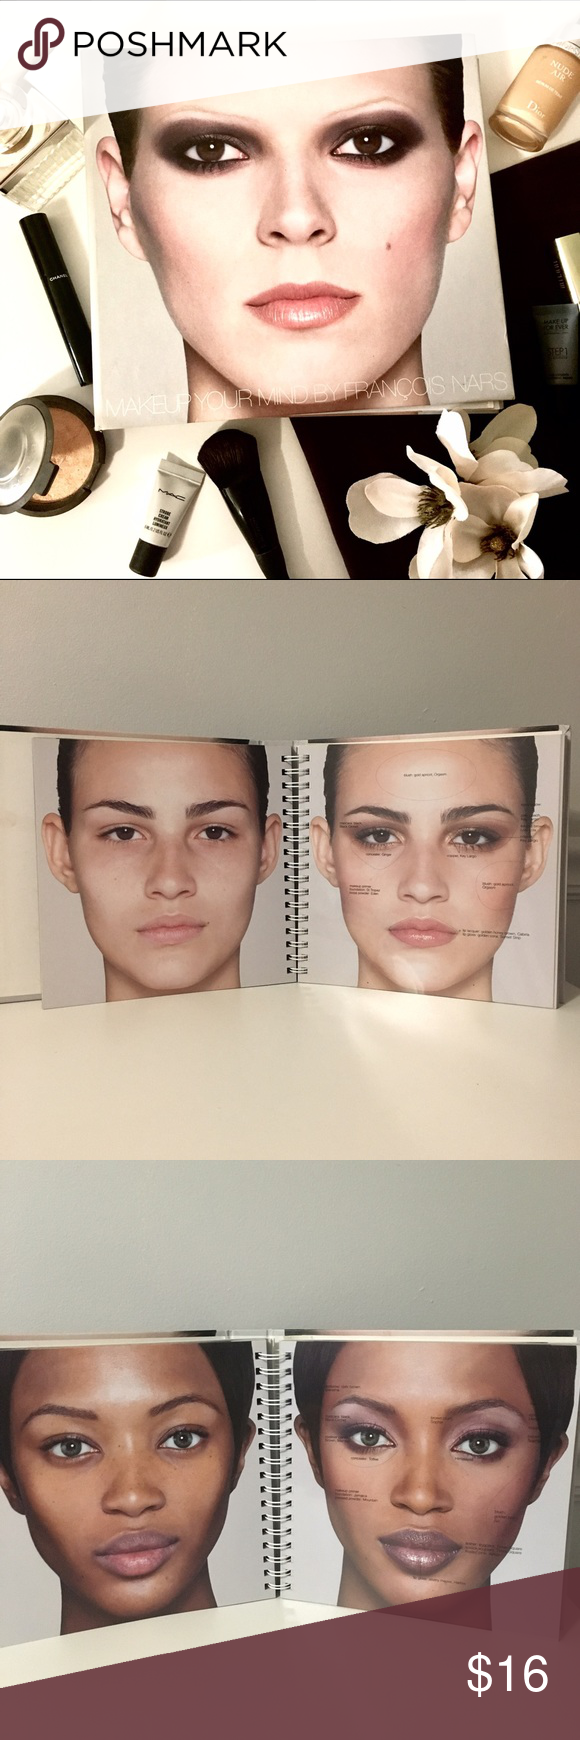 """Francois Nars """"Makeup Your Mind"""" Hardcover Book In this"""